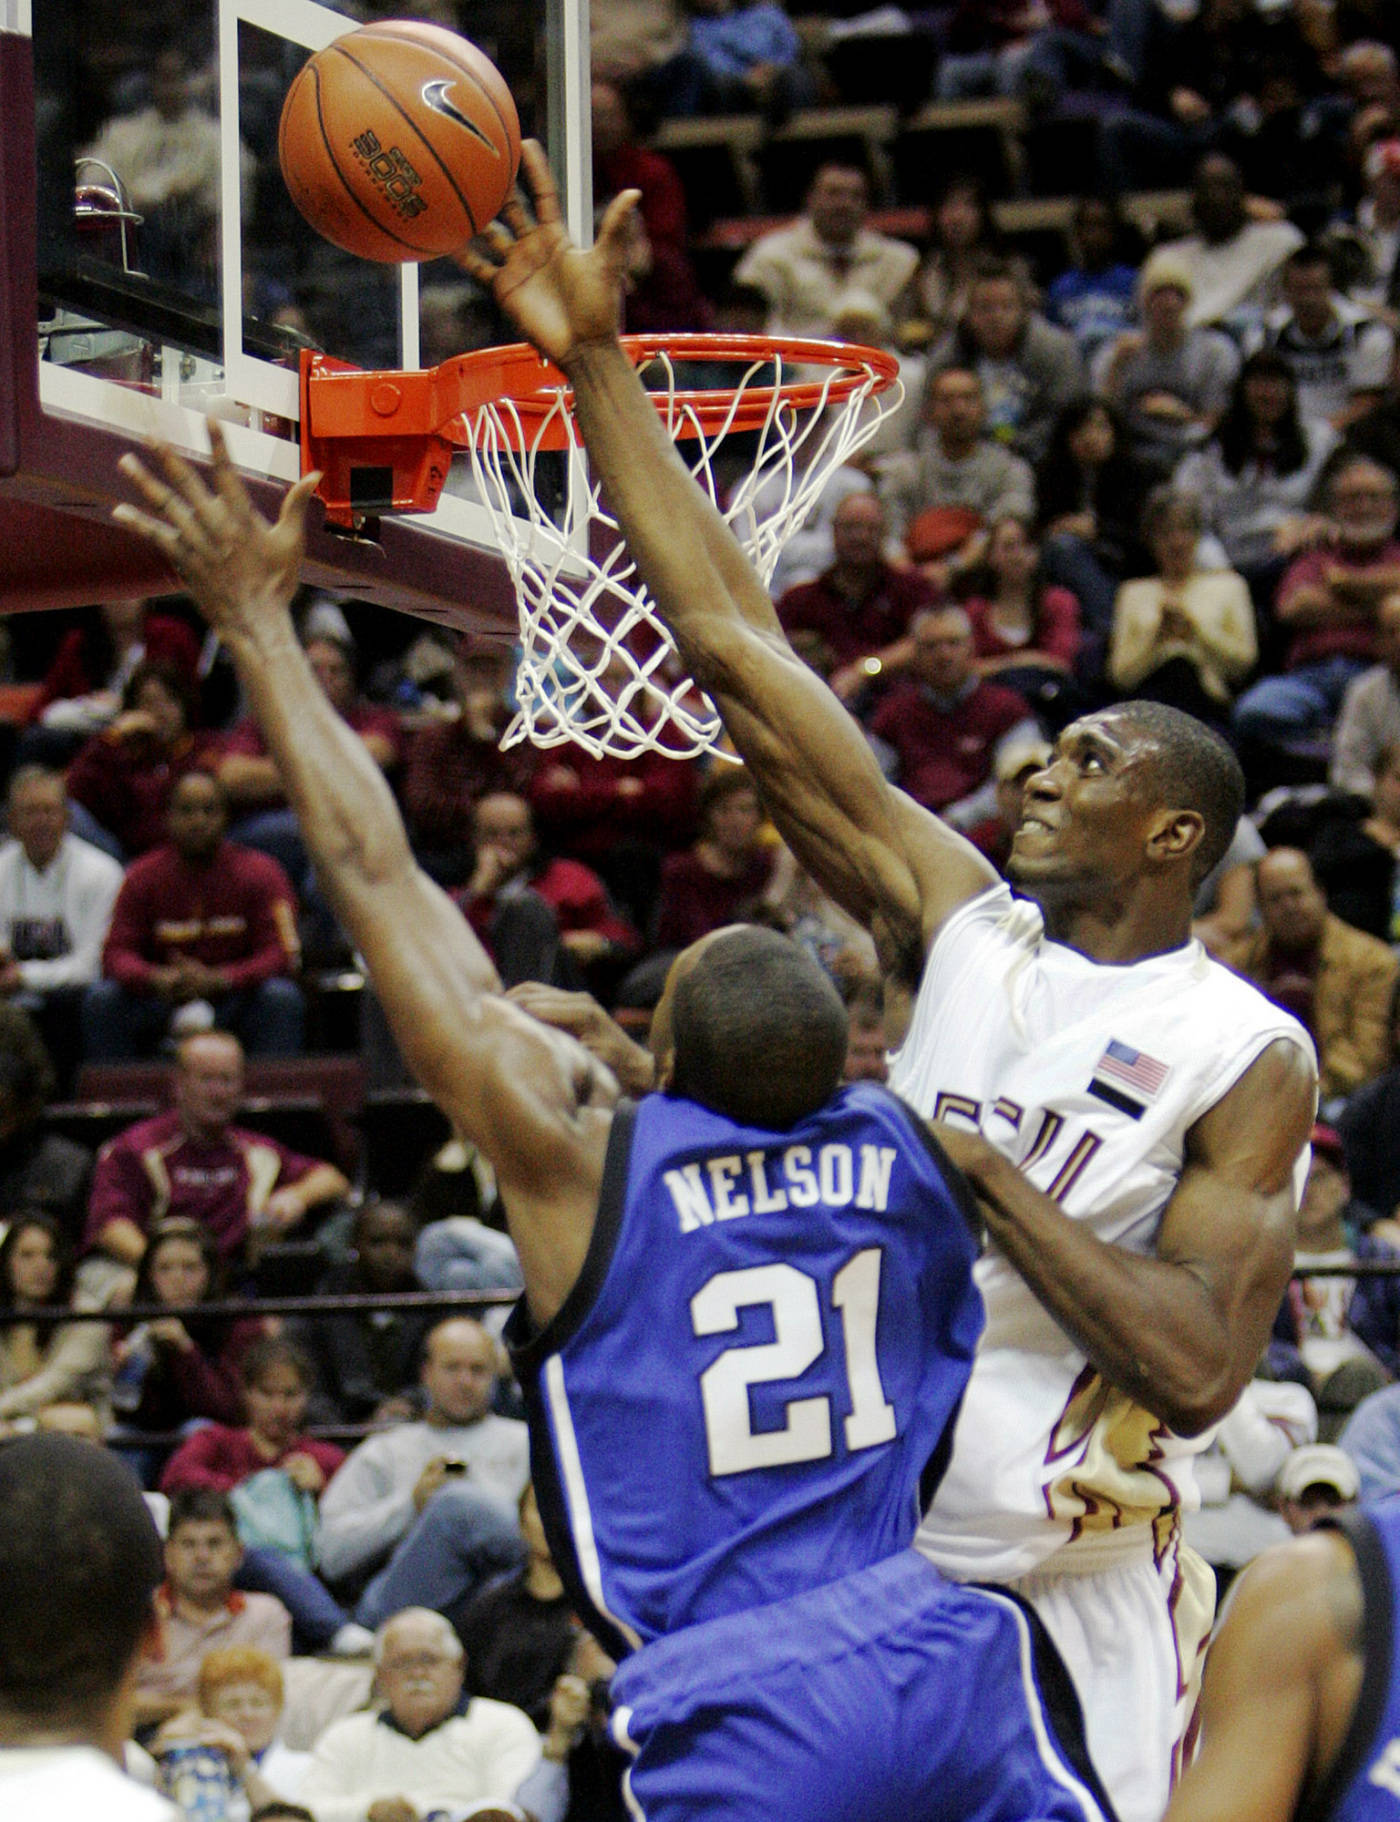 Florida State's Uche Echefu blocks the shot of Duke's DeMarcus Nelson in the second half of a college basketball game which Duke won 70-57 on Wednesday, Jan. 16, 2008 in Tallahassee, Fla.